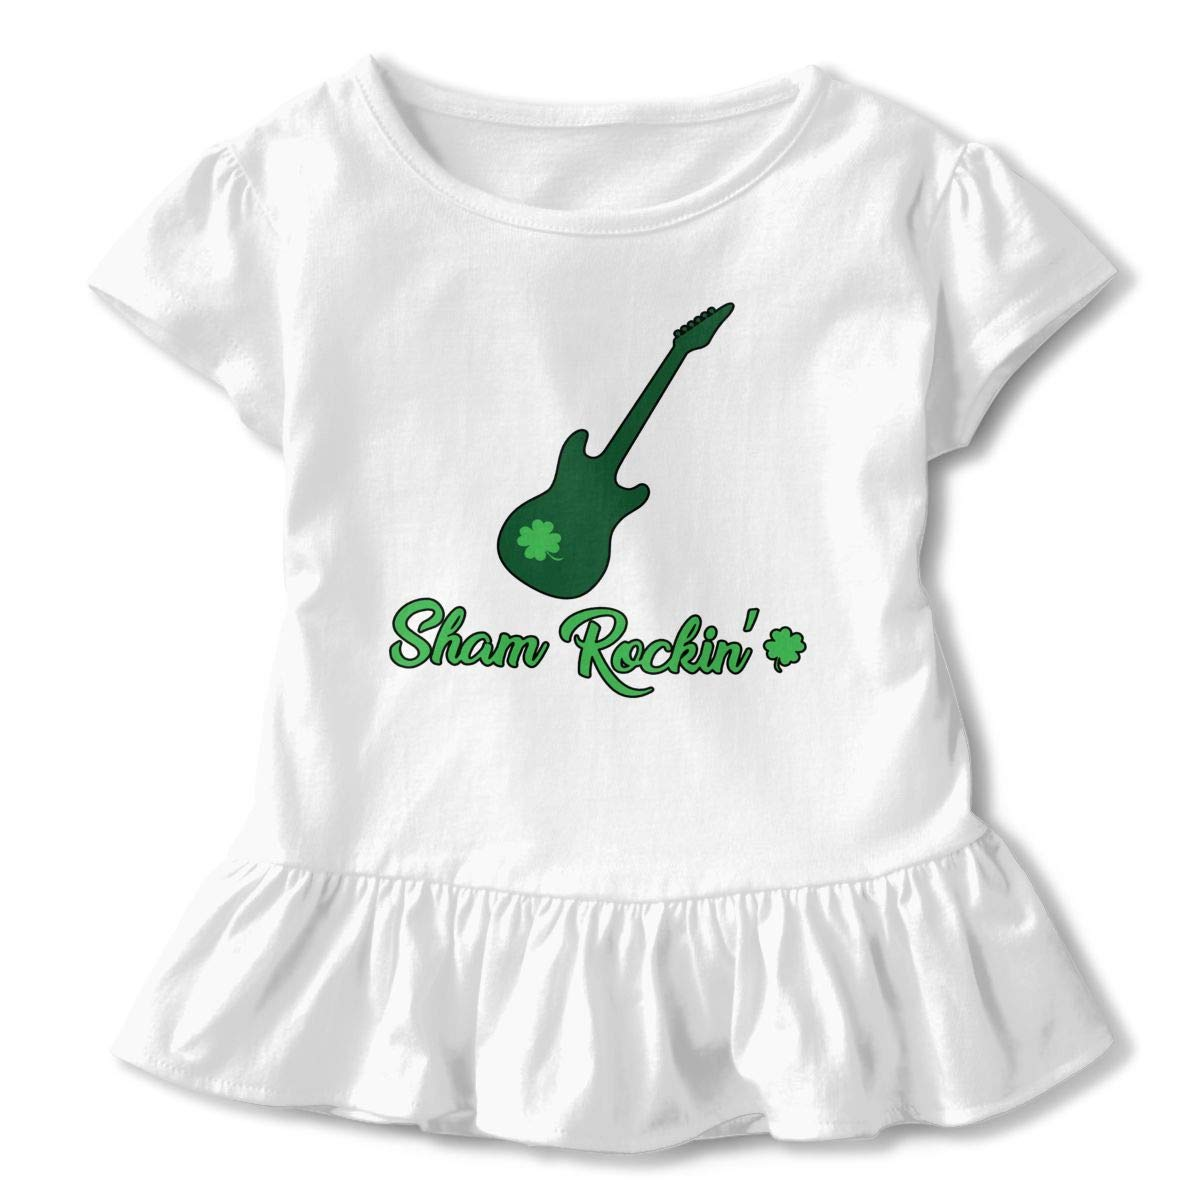 Clover Guitar Toddler Ruffle T-Shirt Crew Neck Tees for 2-6T